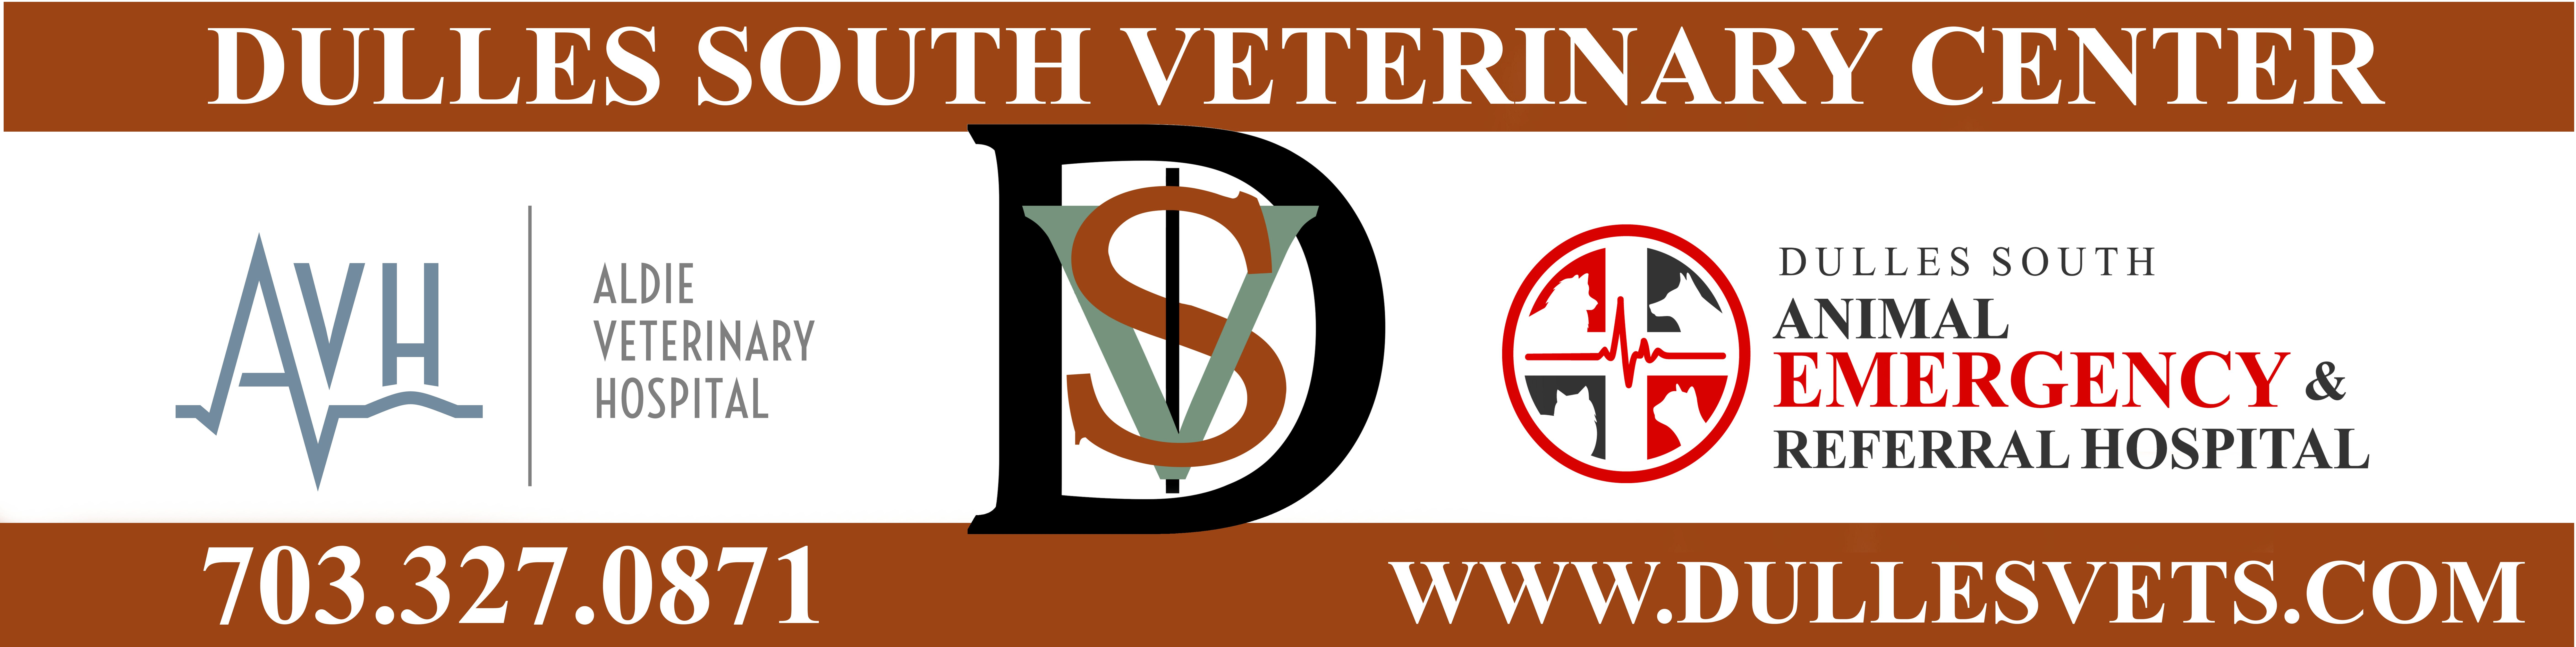 Dulles South Emergency Veterinary Center